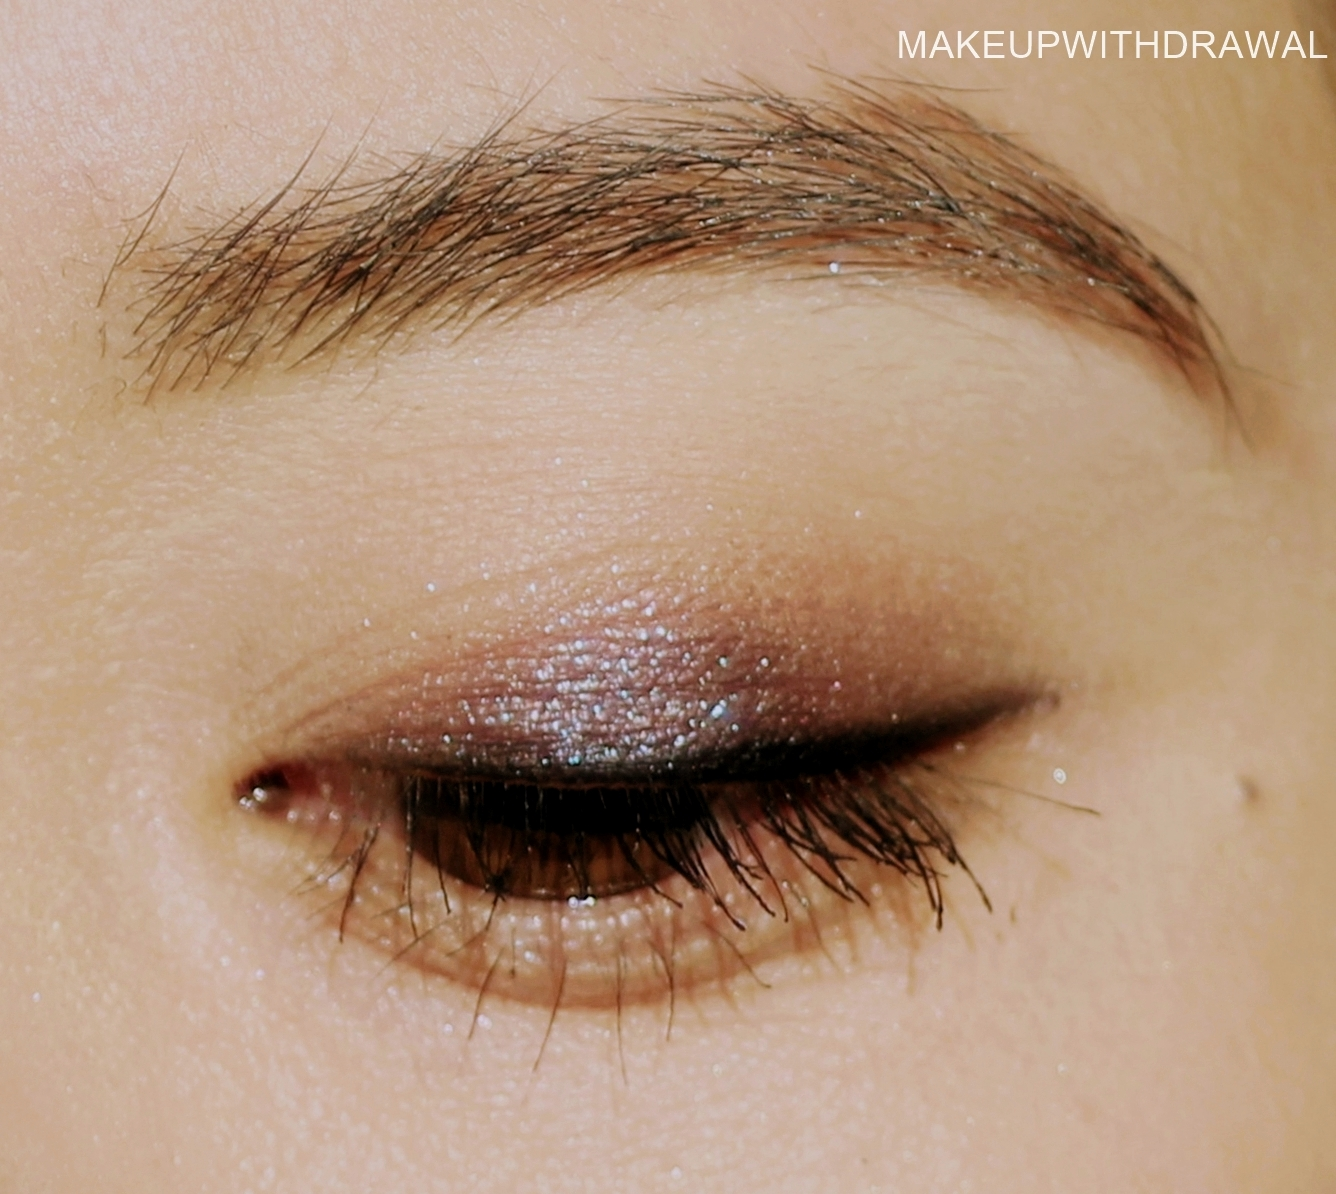 Tom Ford Private Eyeshadow Camera Obscura Makeup Withdrawal